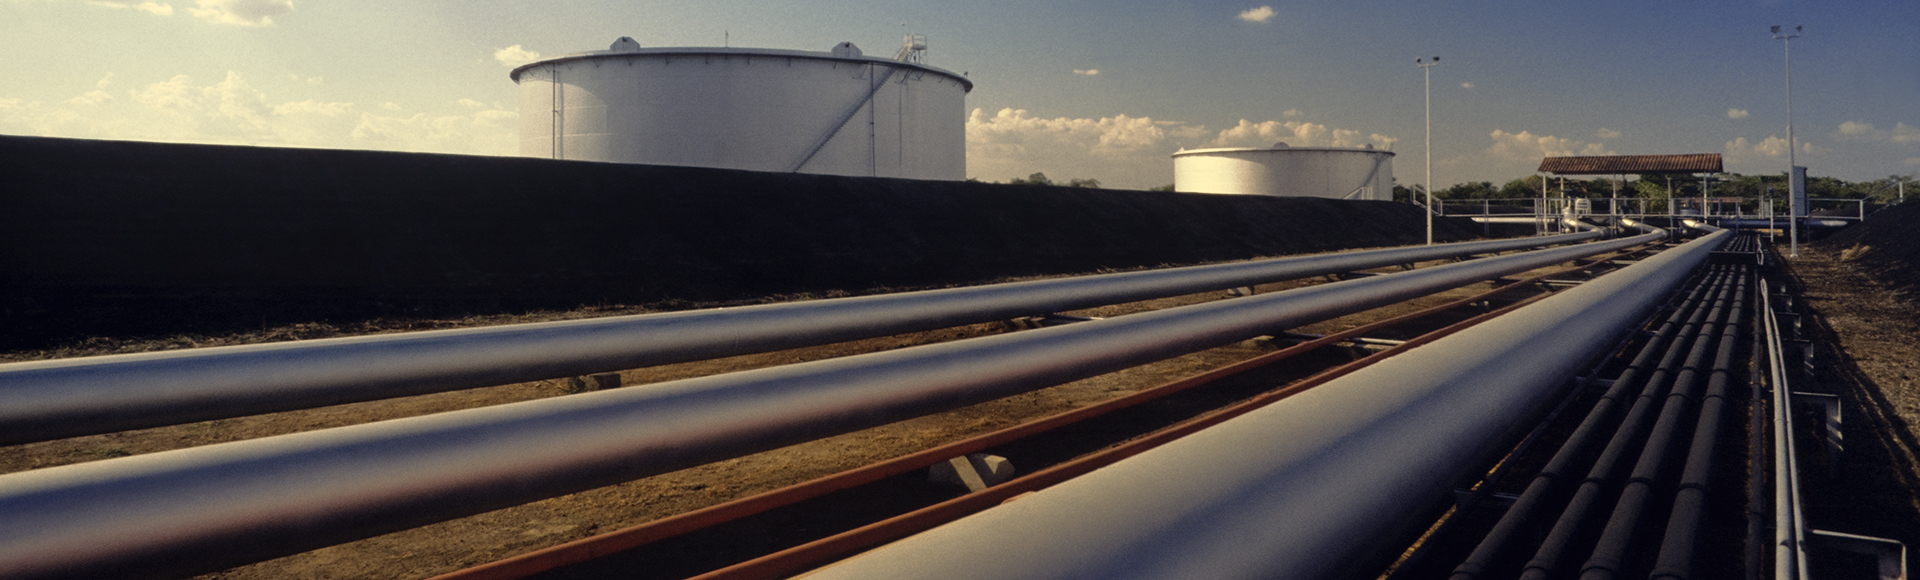 Hatch Oil & Gas Infrastructure